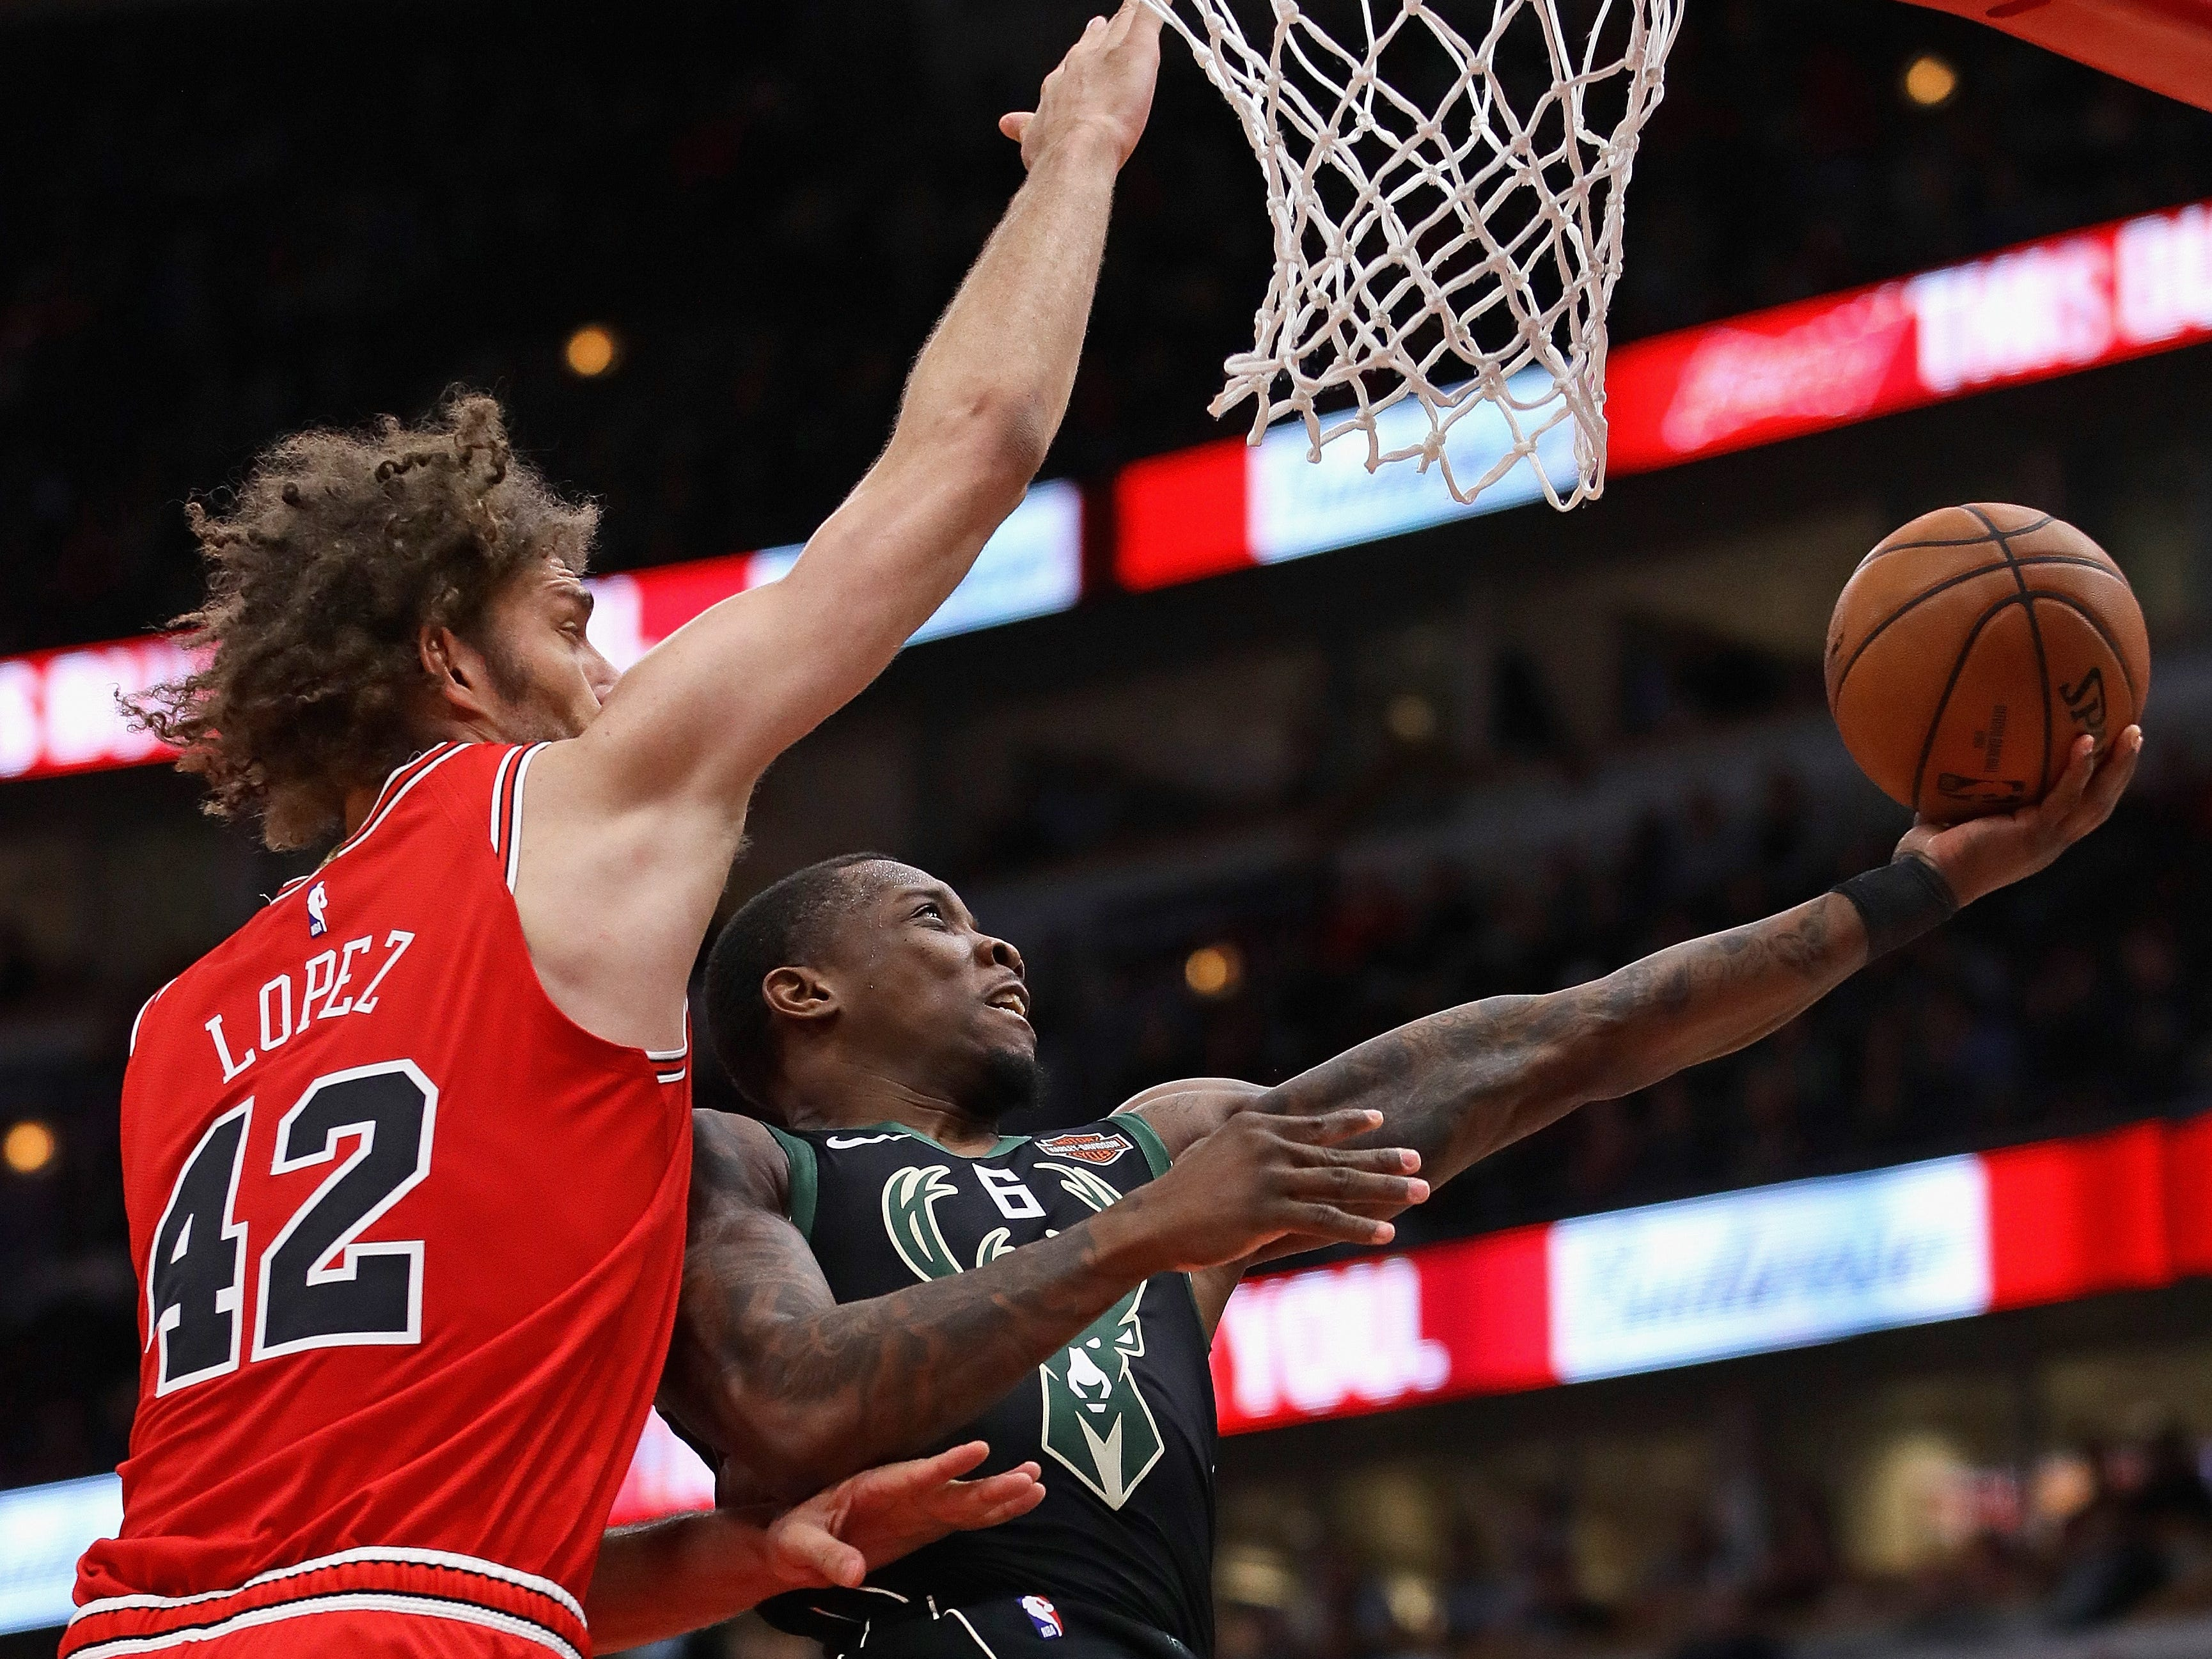 Bucks guard Eric Bledsoe gets past Robin Lopez of the Bulls for a reverse layup during the second half Monday.